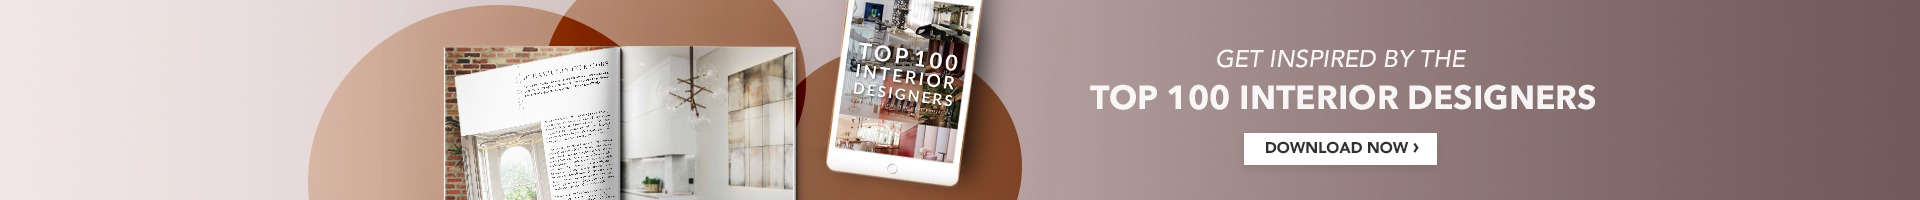 Ebook Top 100 Interior Designers